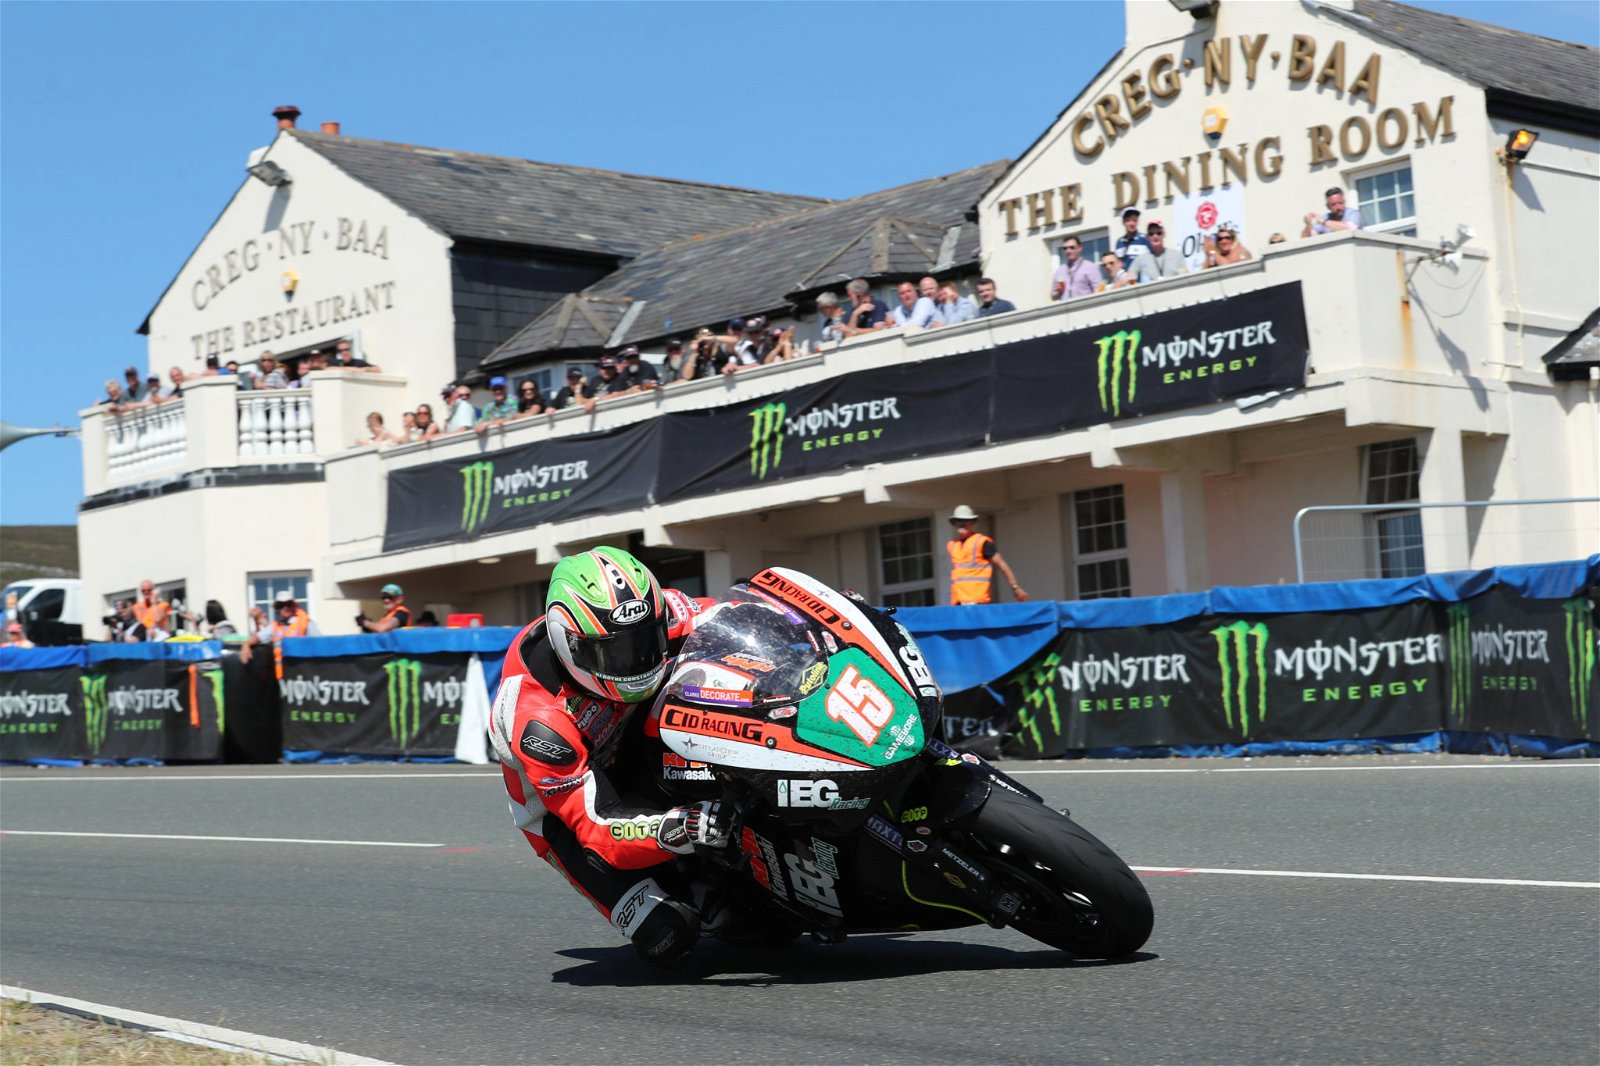 Derek McGee in action at the TT image credit Pacemaker Press International